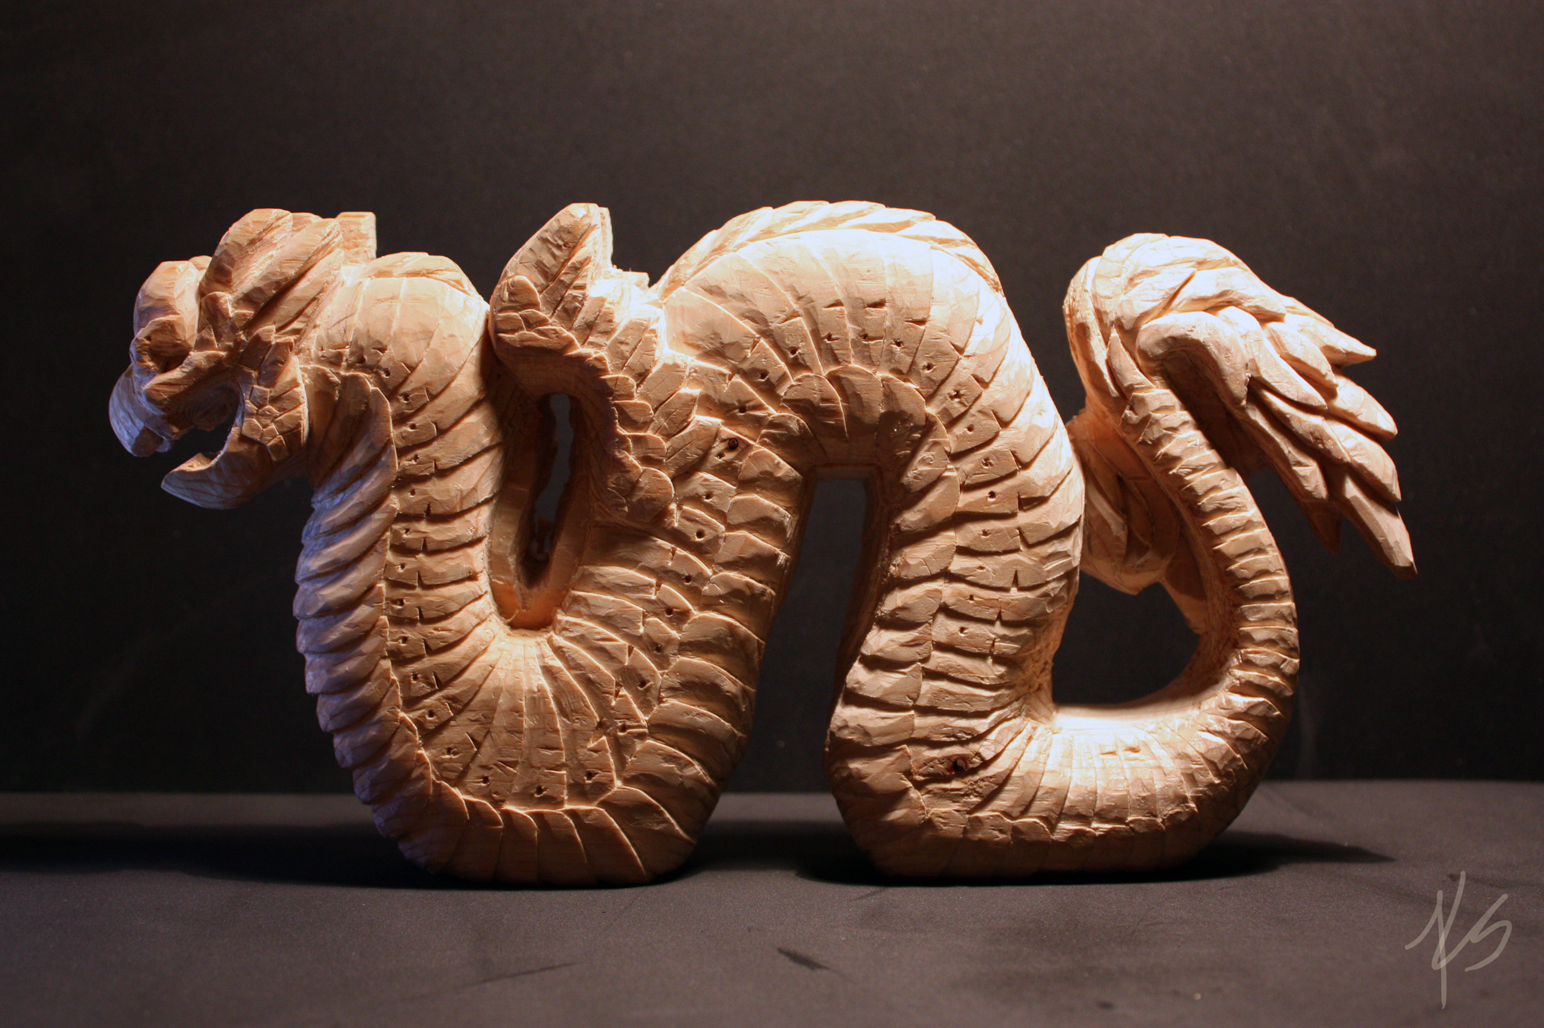 Carved Wooden Serpent by DargonXKS